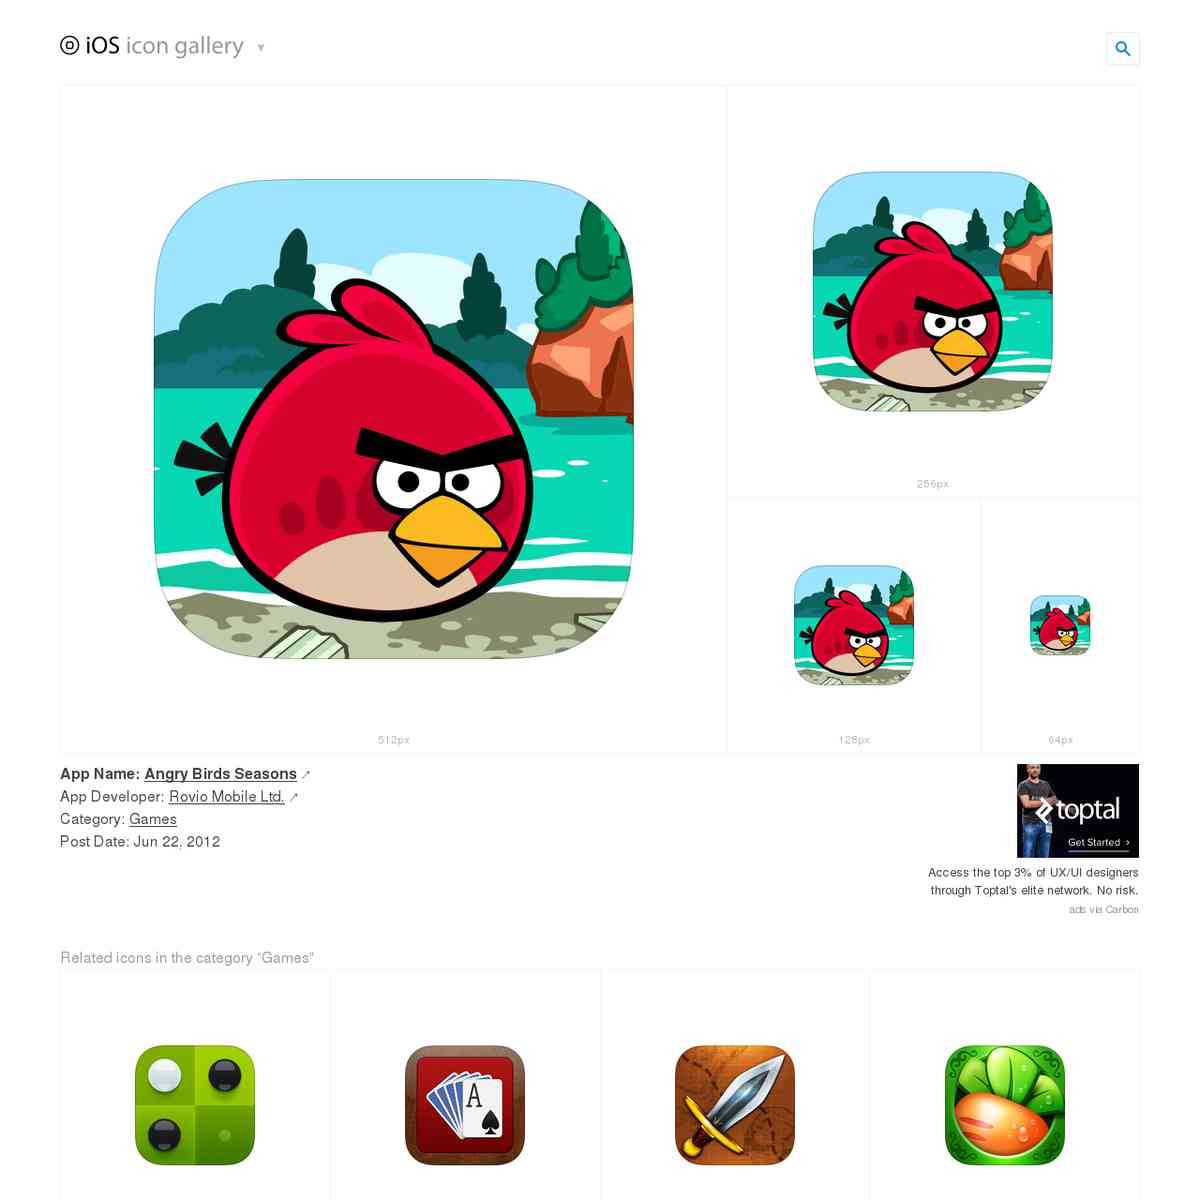 iosicongallery.com/games/angry-birds-seasons/